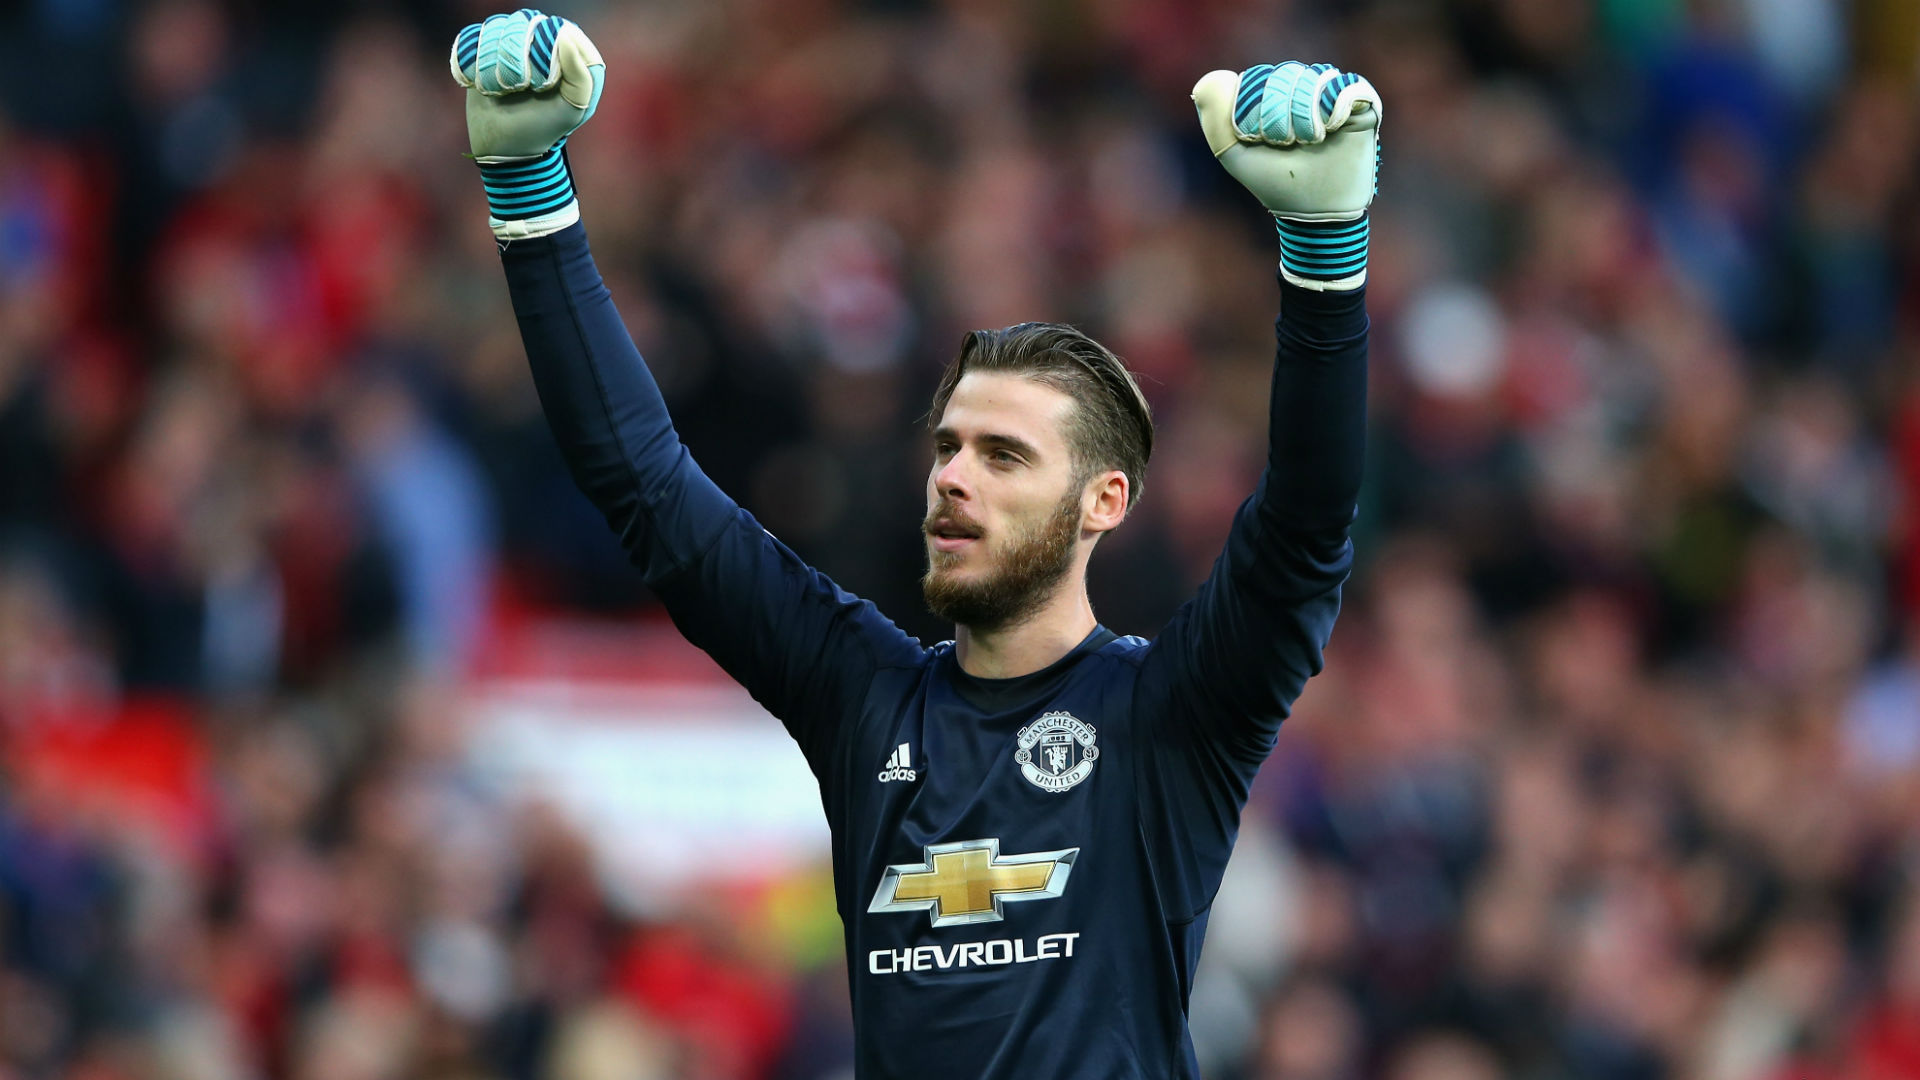 David De Gea The Best Goalkeeper with a Century of clean sheets